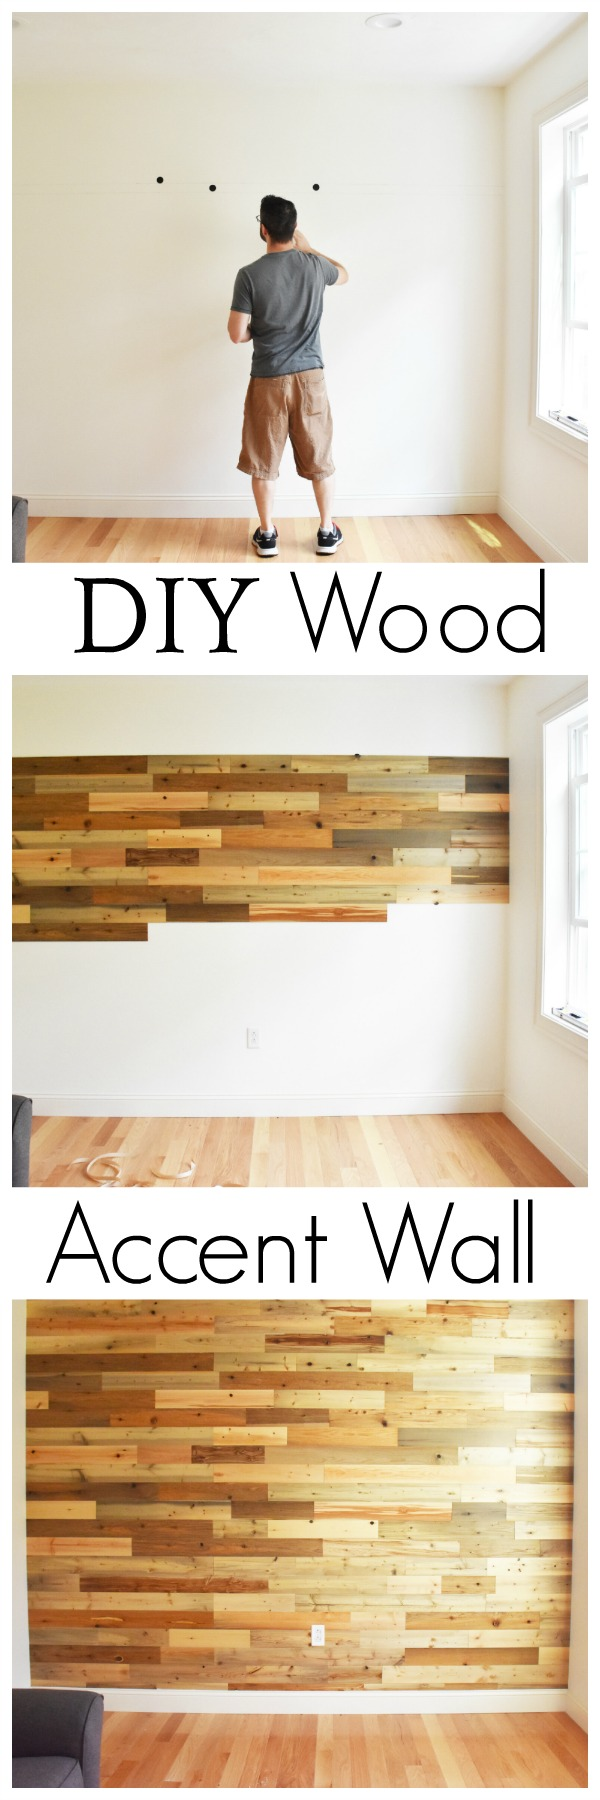 how i made an awesome reclaimed wood accent wall with timberchic. Black Bedroom Furniture Sets. Home Design Ideas